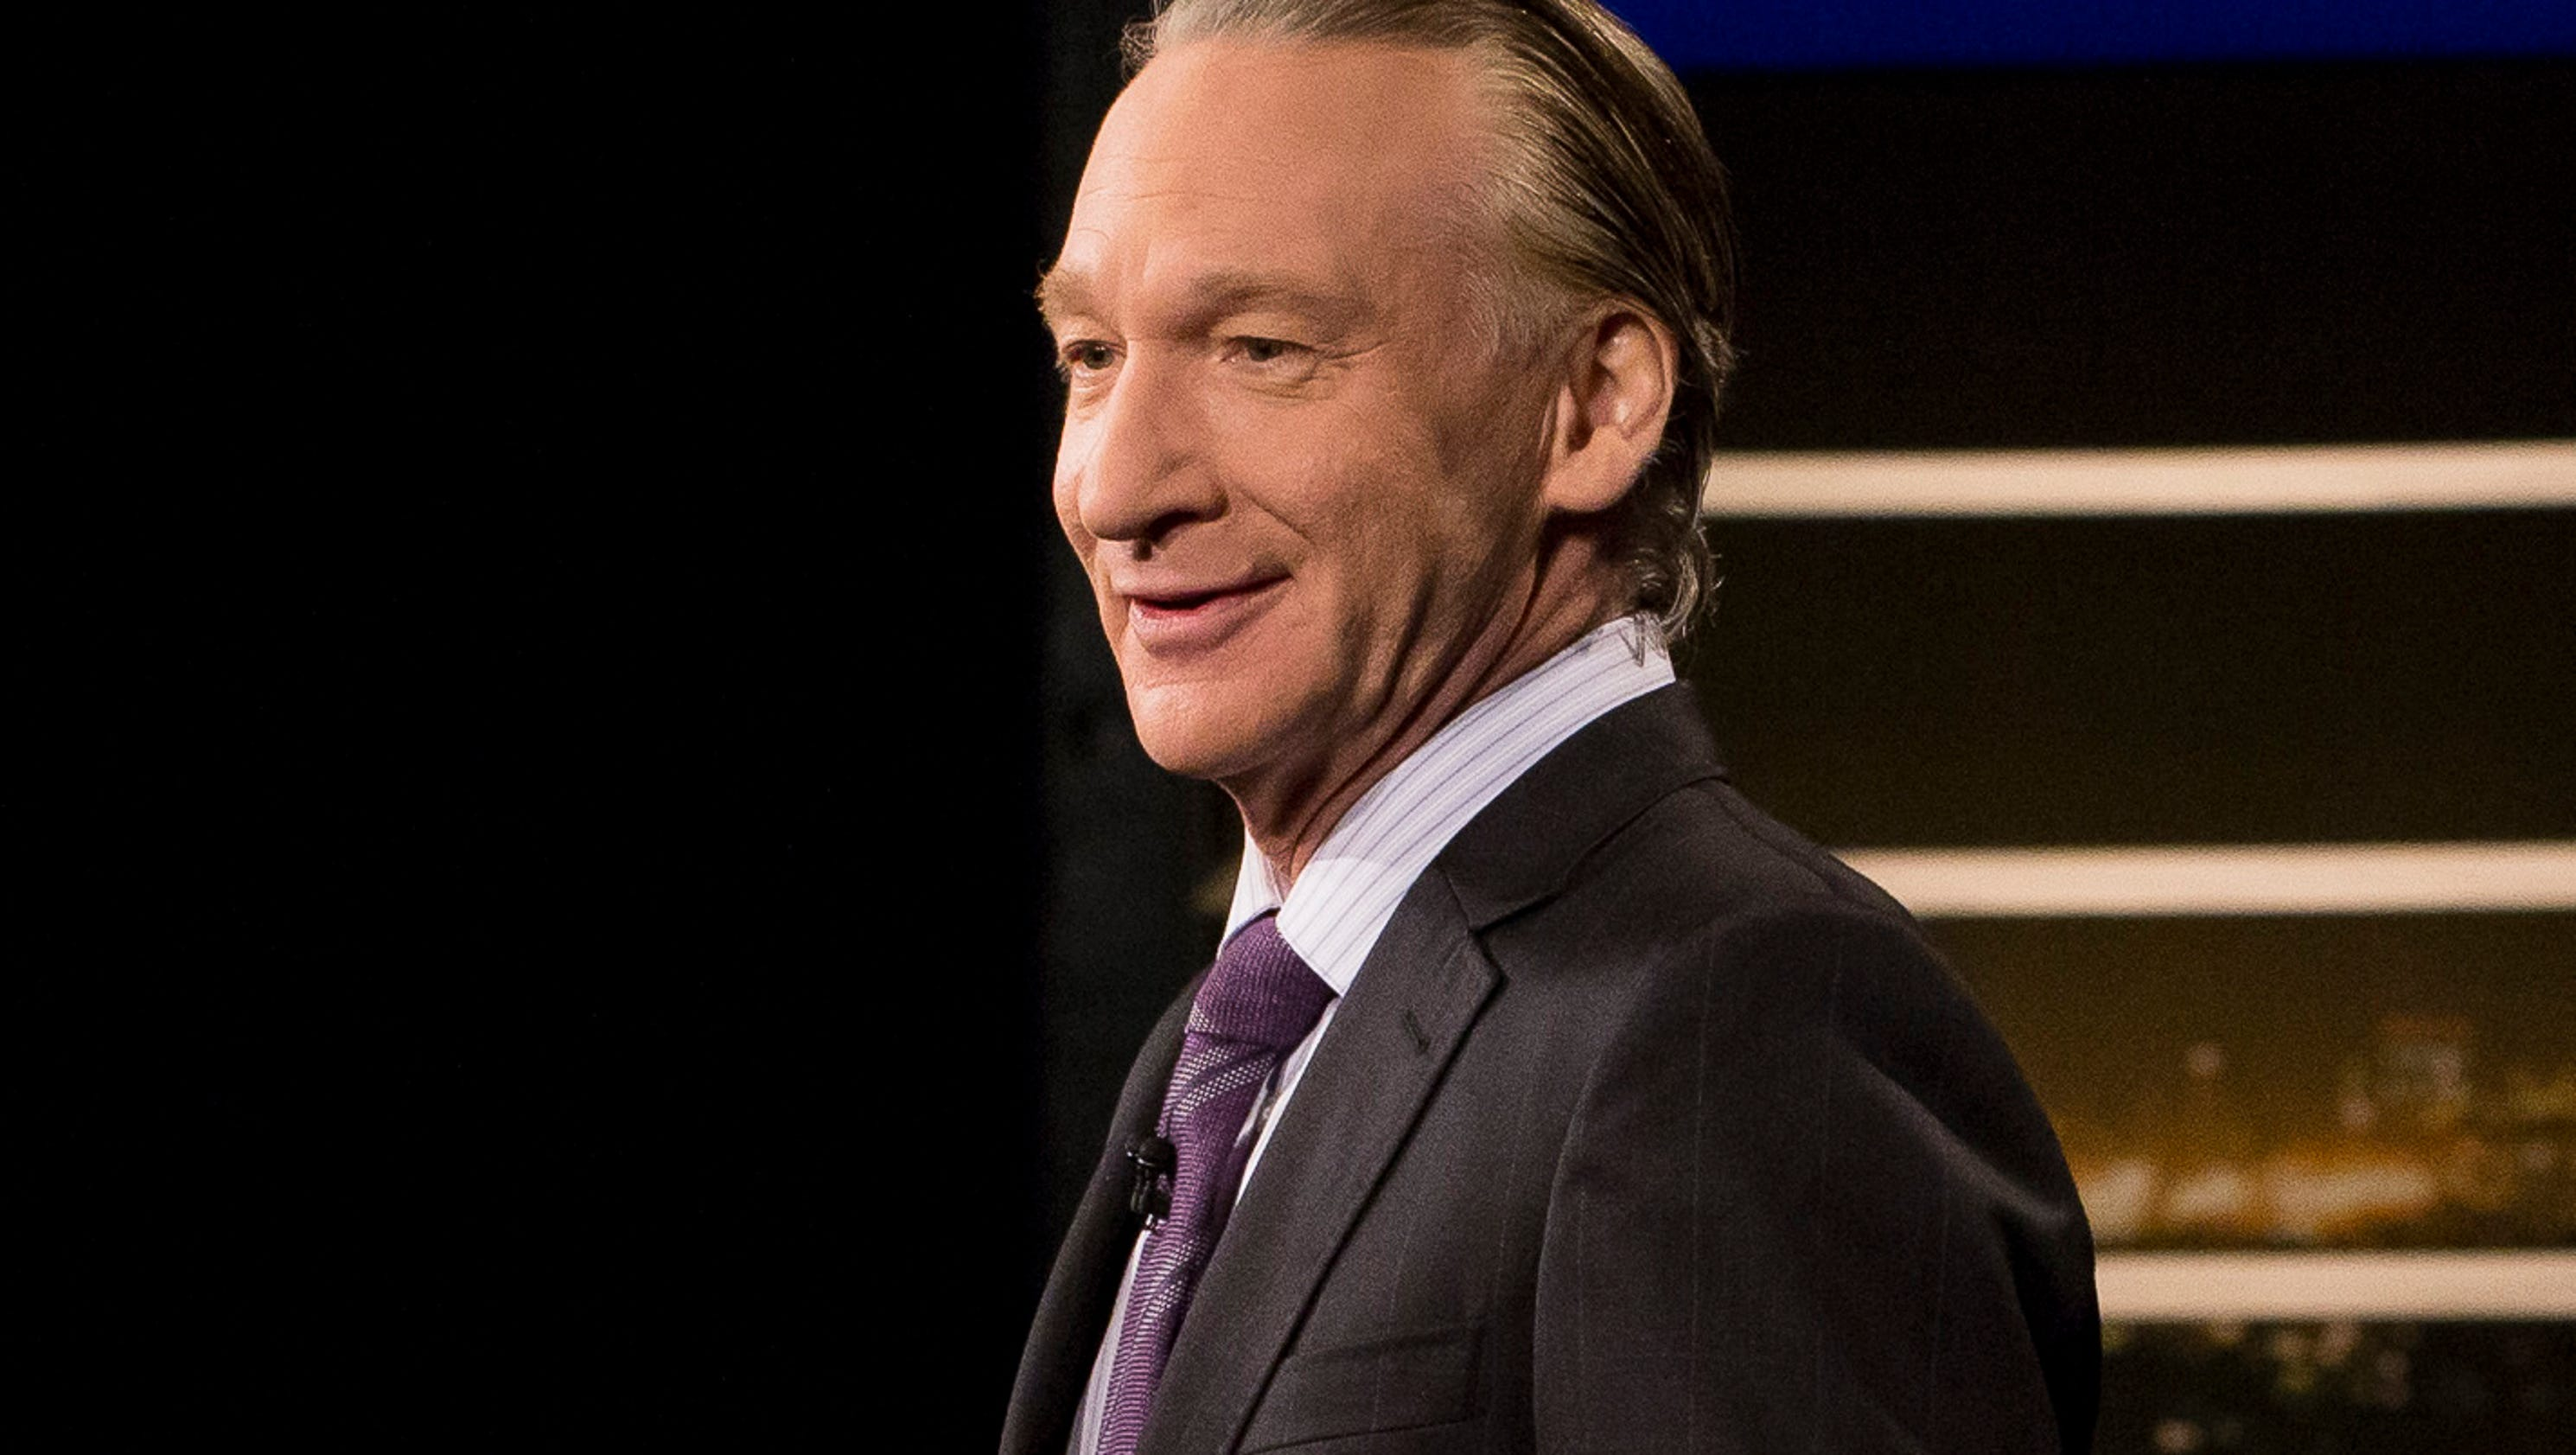 Bill Maher Apologizes On-air For Using Racial Slur During 'Real Time' Interview